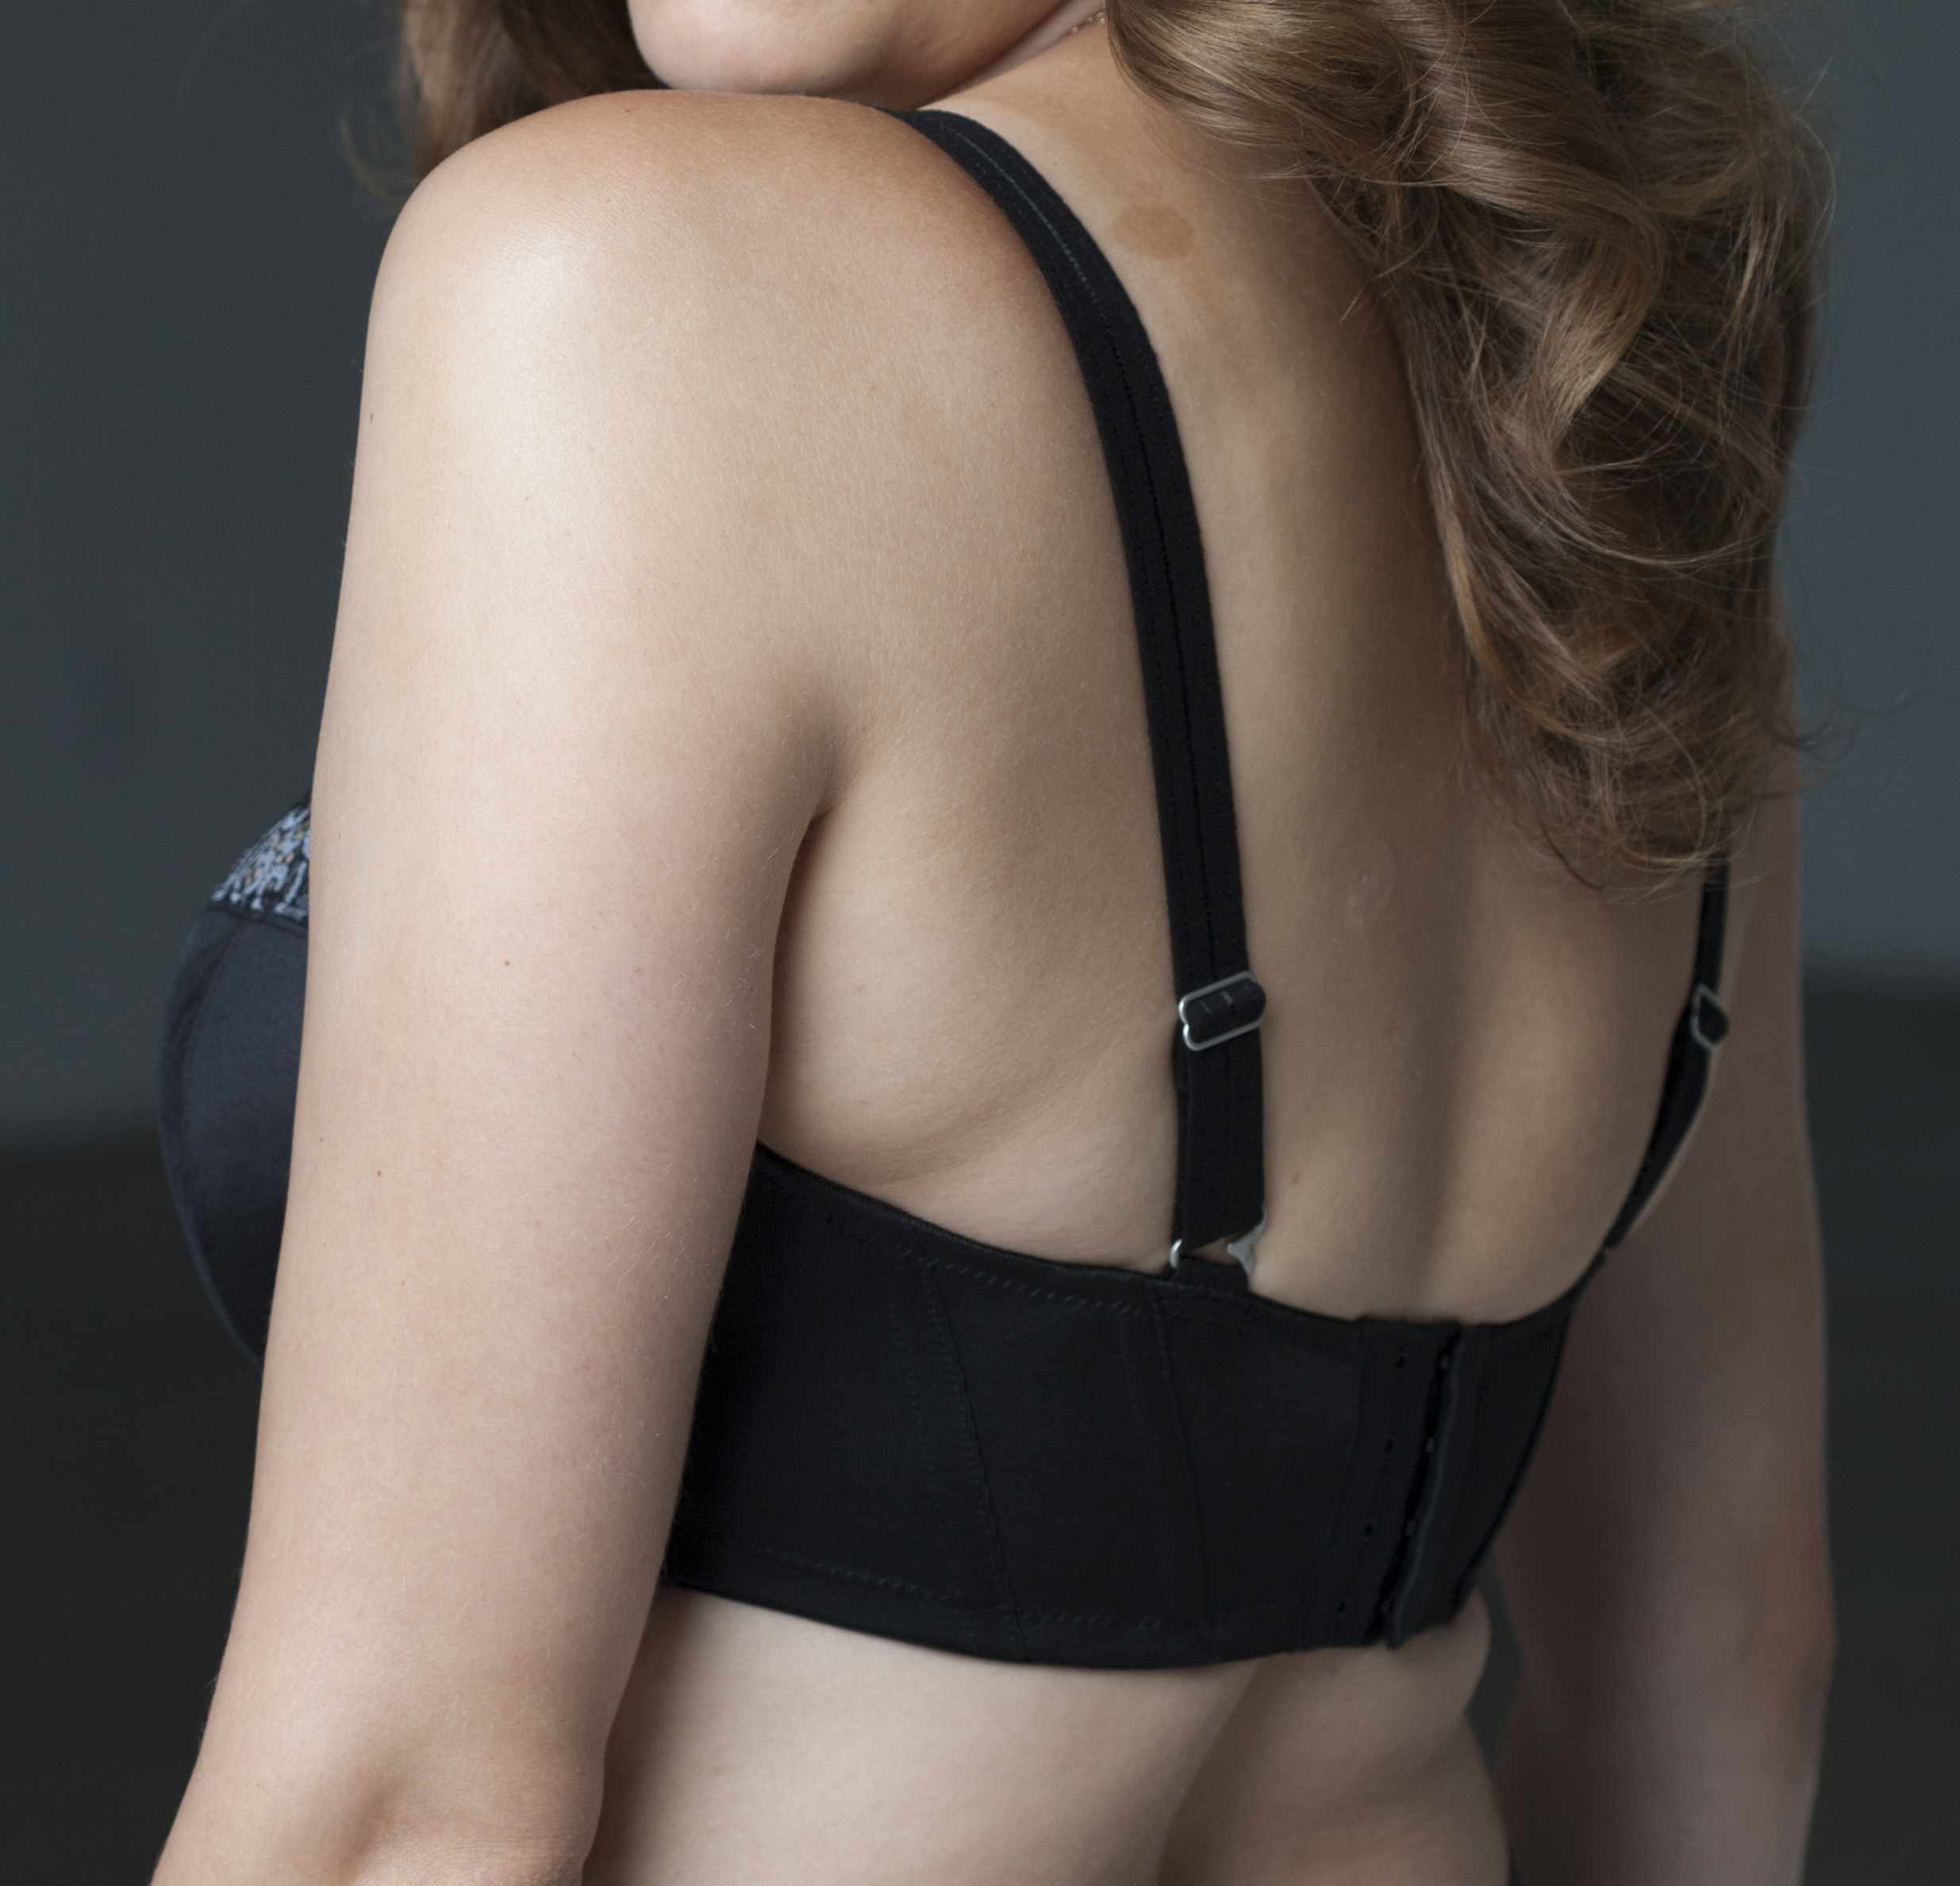 BACK Band - Having your correct underbust measurement is important. The band should do all the